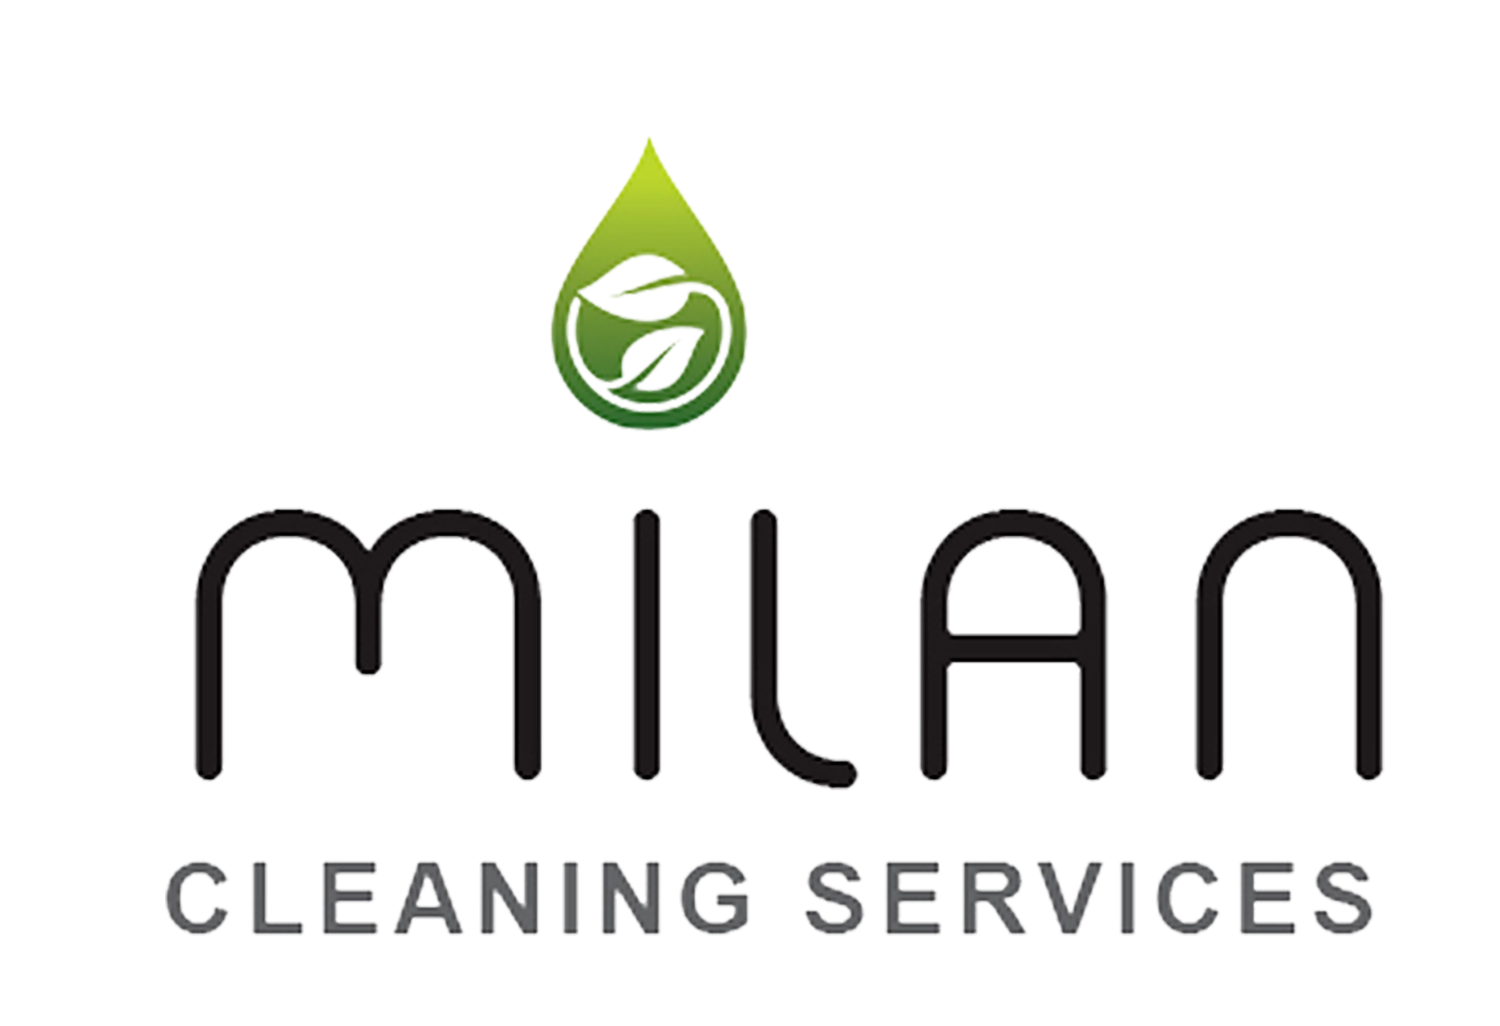 Milan Cleaning Services